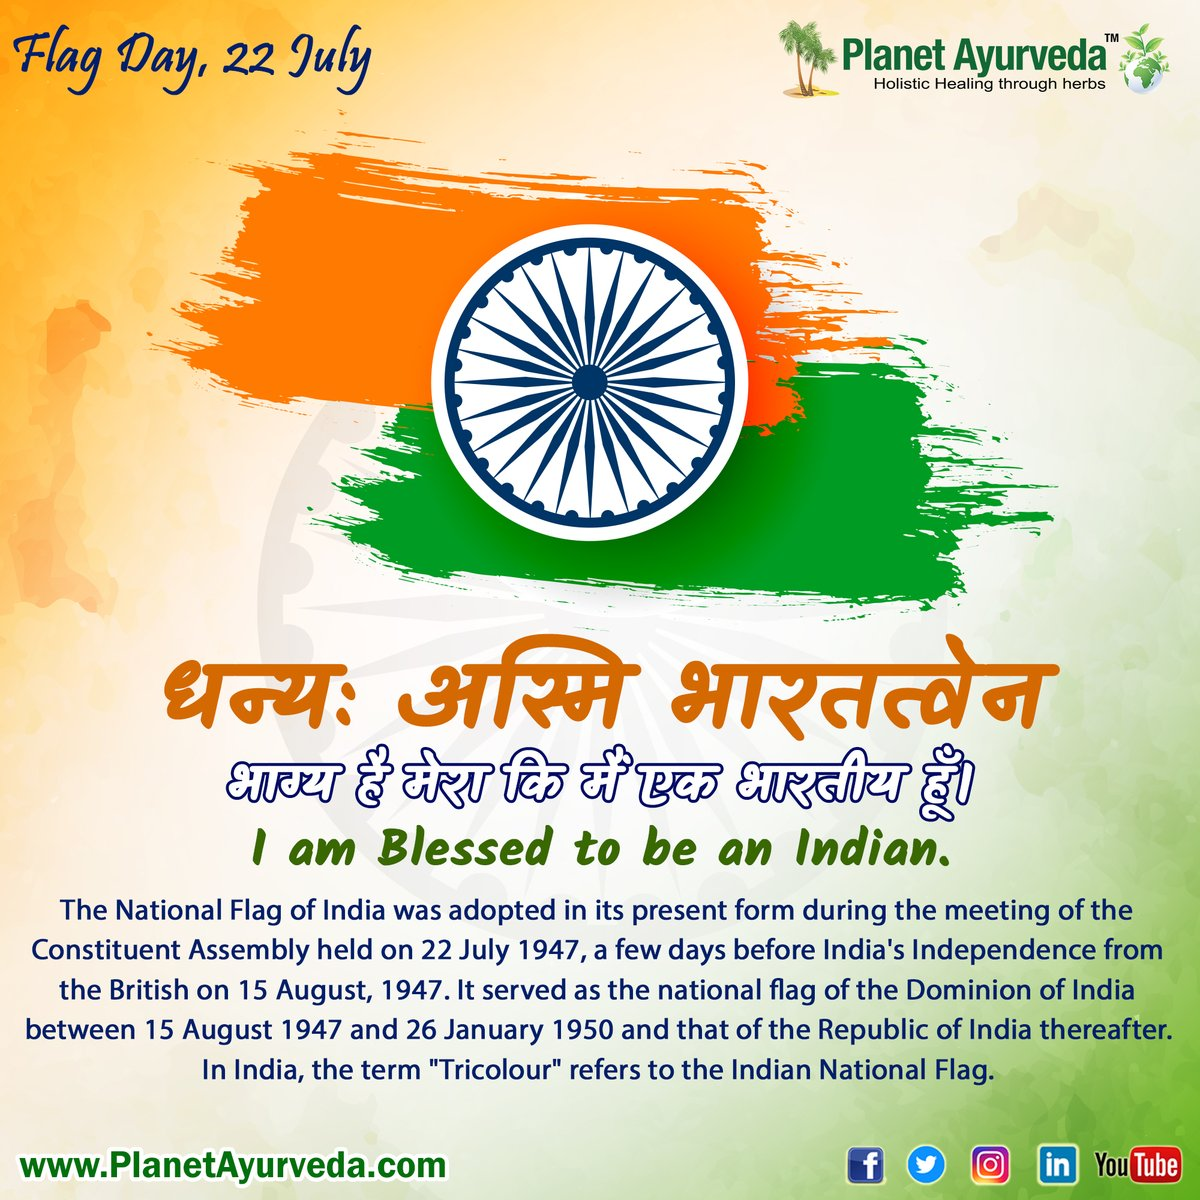 Happy Flag Day 22th July  I Am Blessed To Be An Indian  #indiaflagday #flagday #indianflagcolors #indianflags #blessedtobeanindian #proudtobeanindian https://t.co/srQ0JcfQ4a